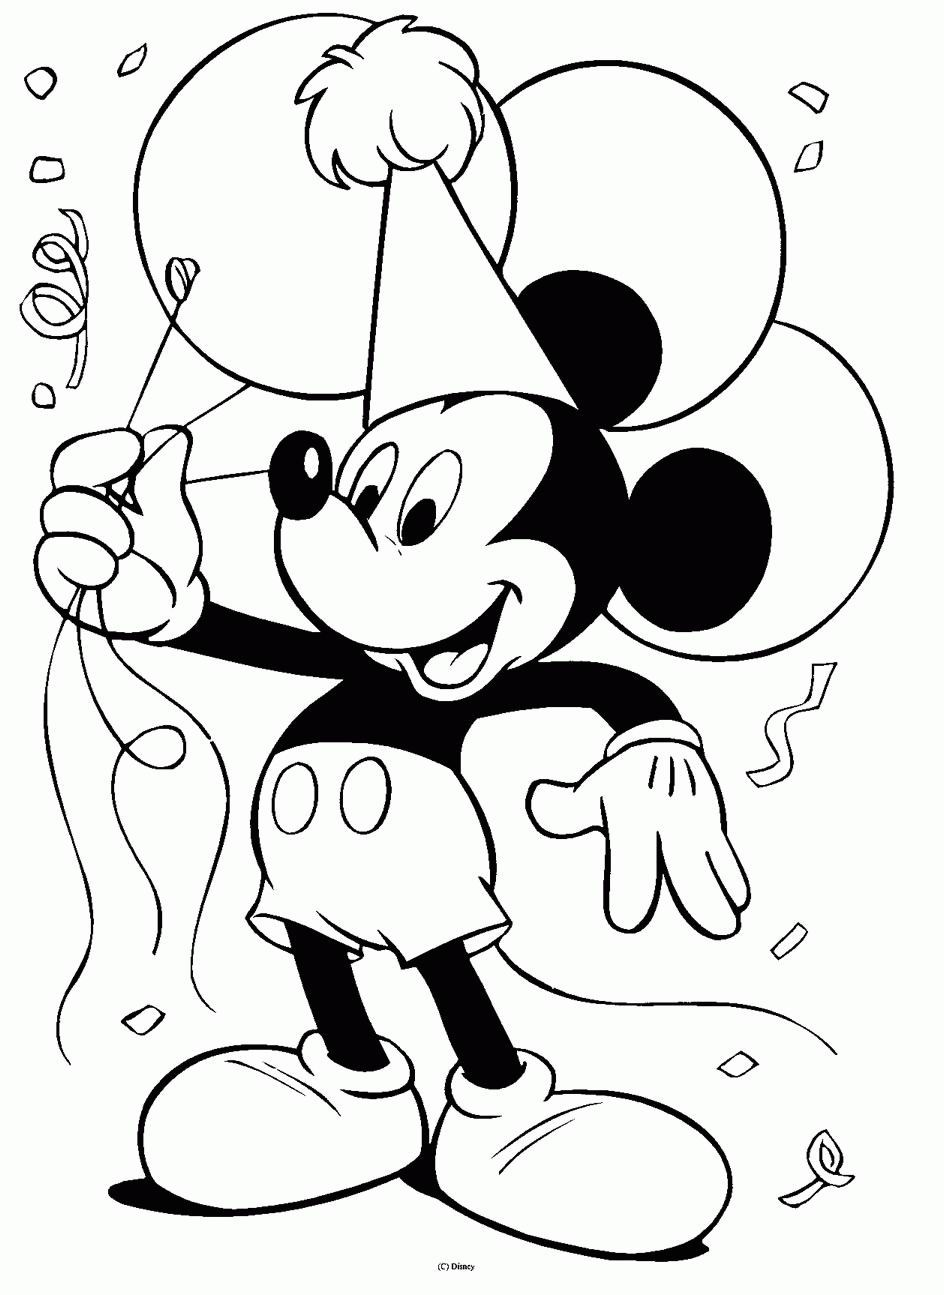 free coloring disney pages | Ultimate pictures mix: Disney coloring pages